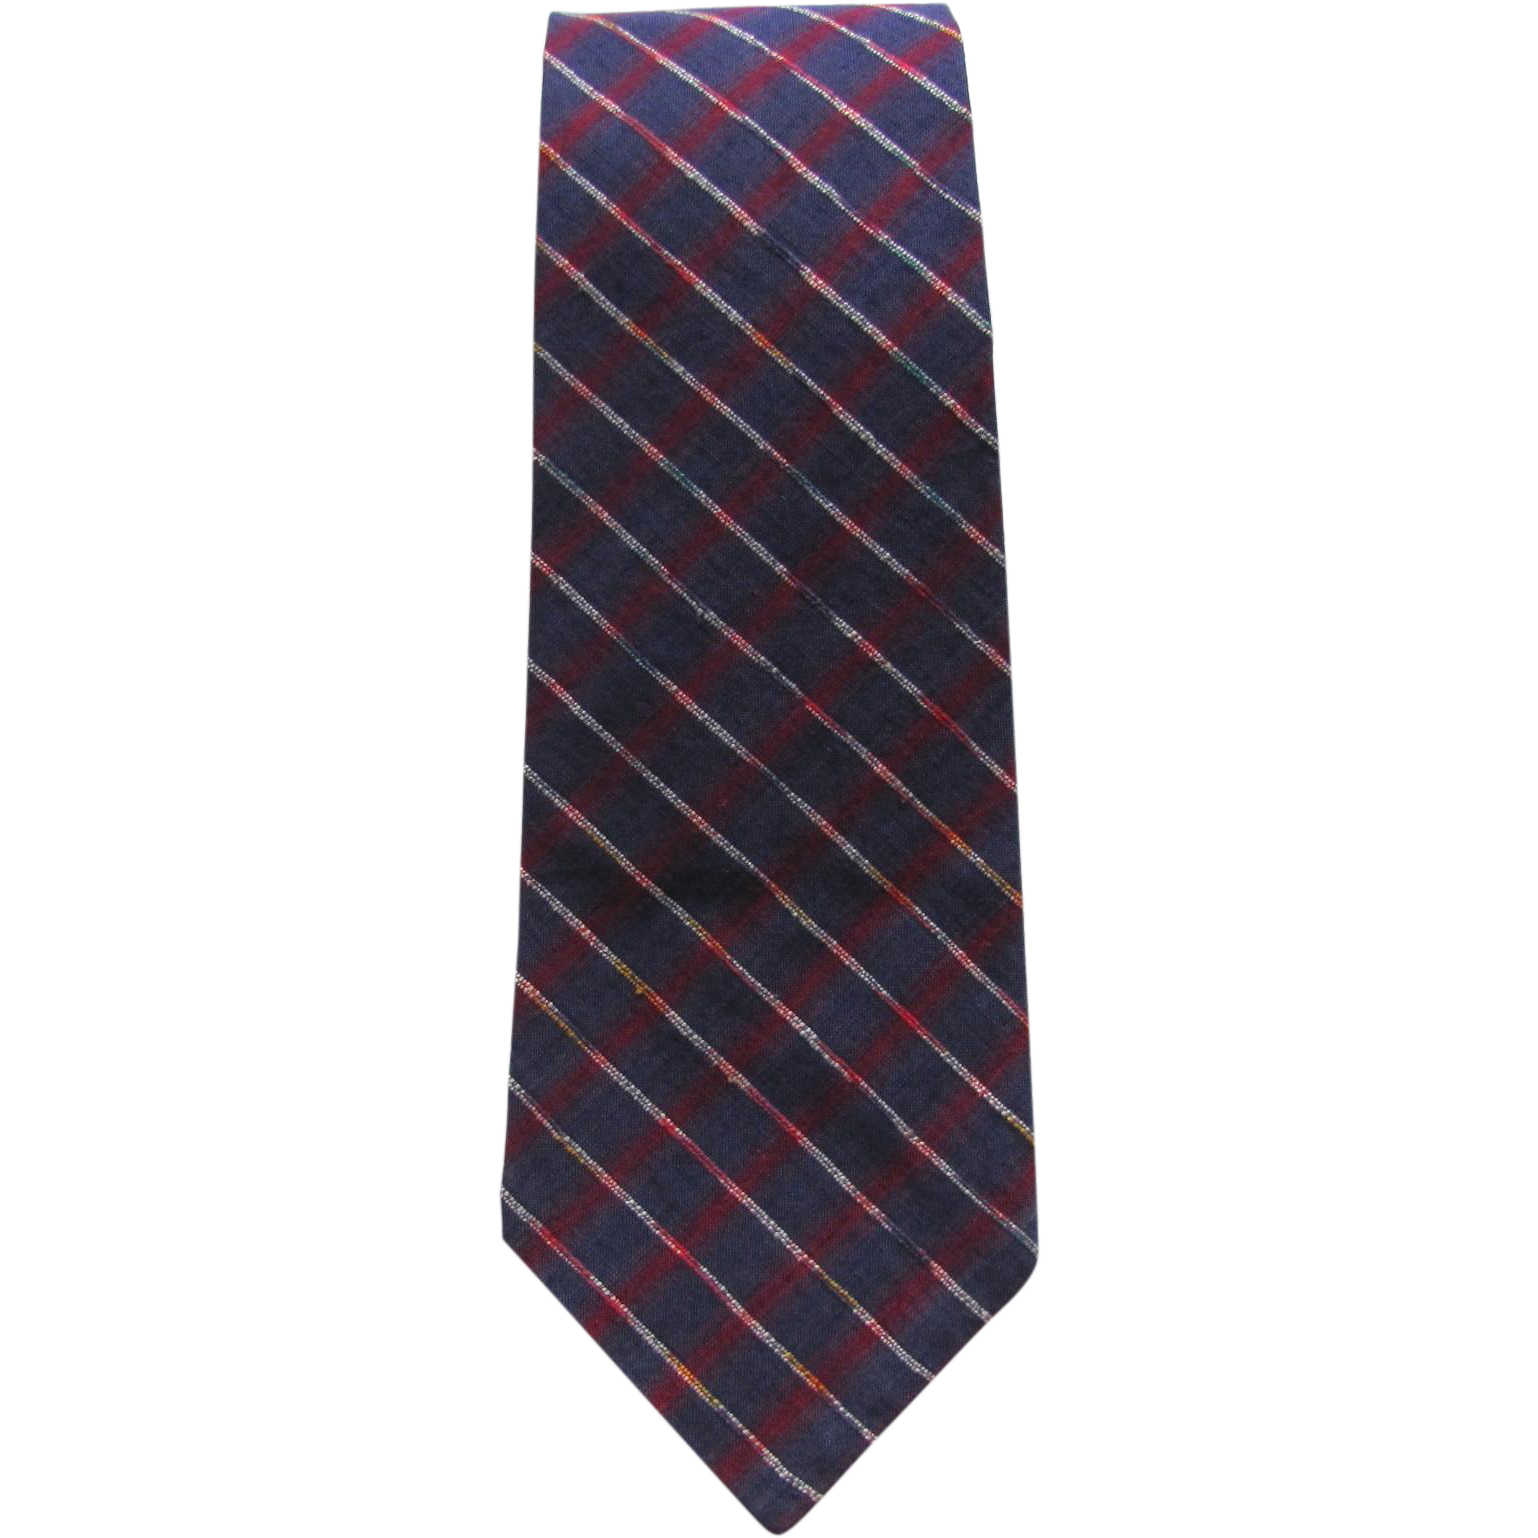 Vintage Necktie in Blue and Red Plaid with White Accents